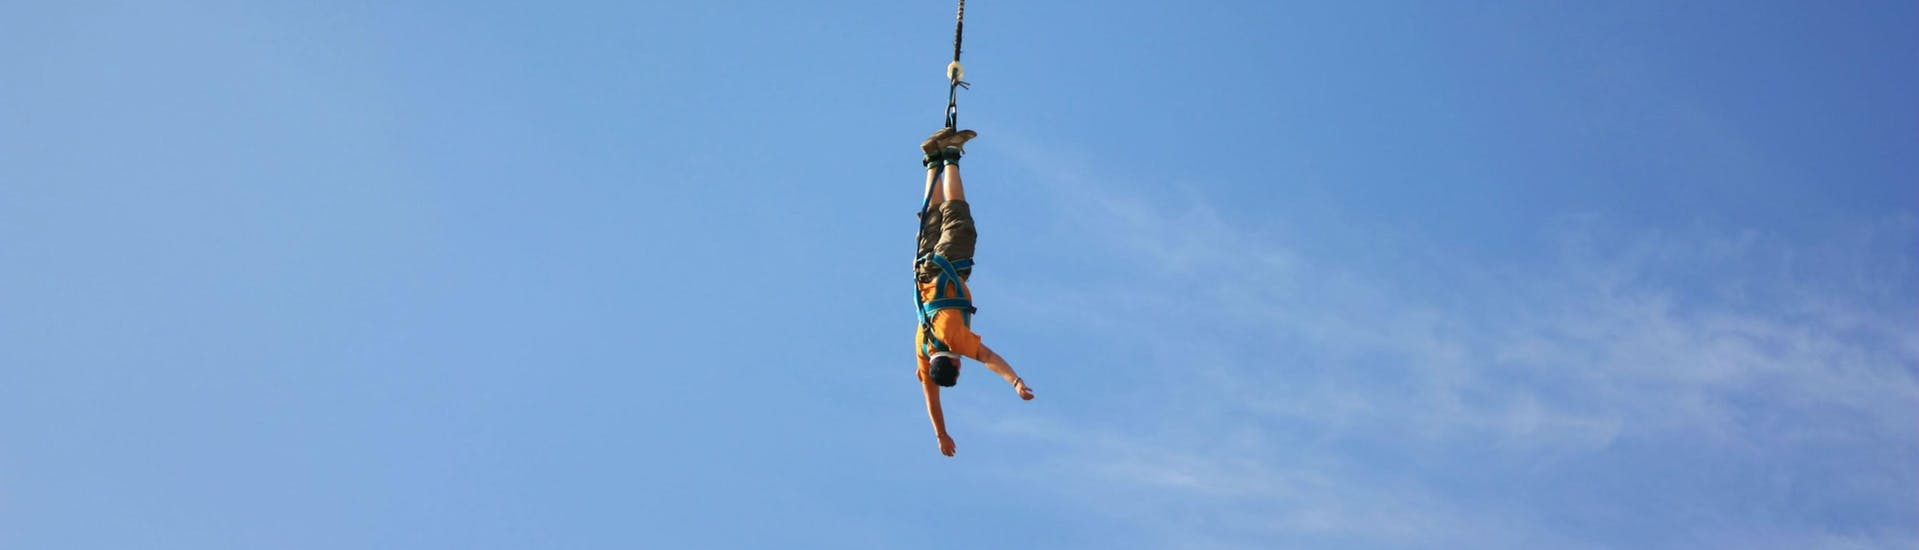 """A bungee jumping enthusiast hangs head upside down after doing his Pendulum Jumps """"Unlimited"""" from the Viaduc Lavilledieu (25m) with Torrents & Granit."""